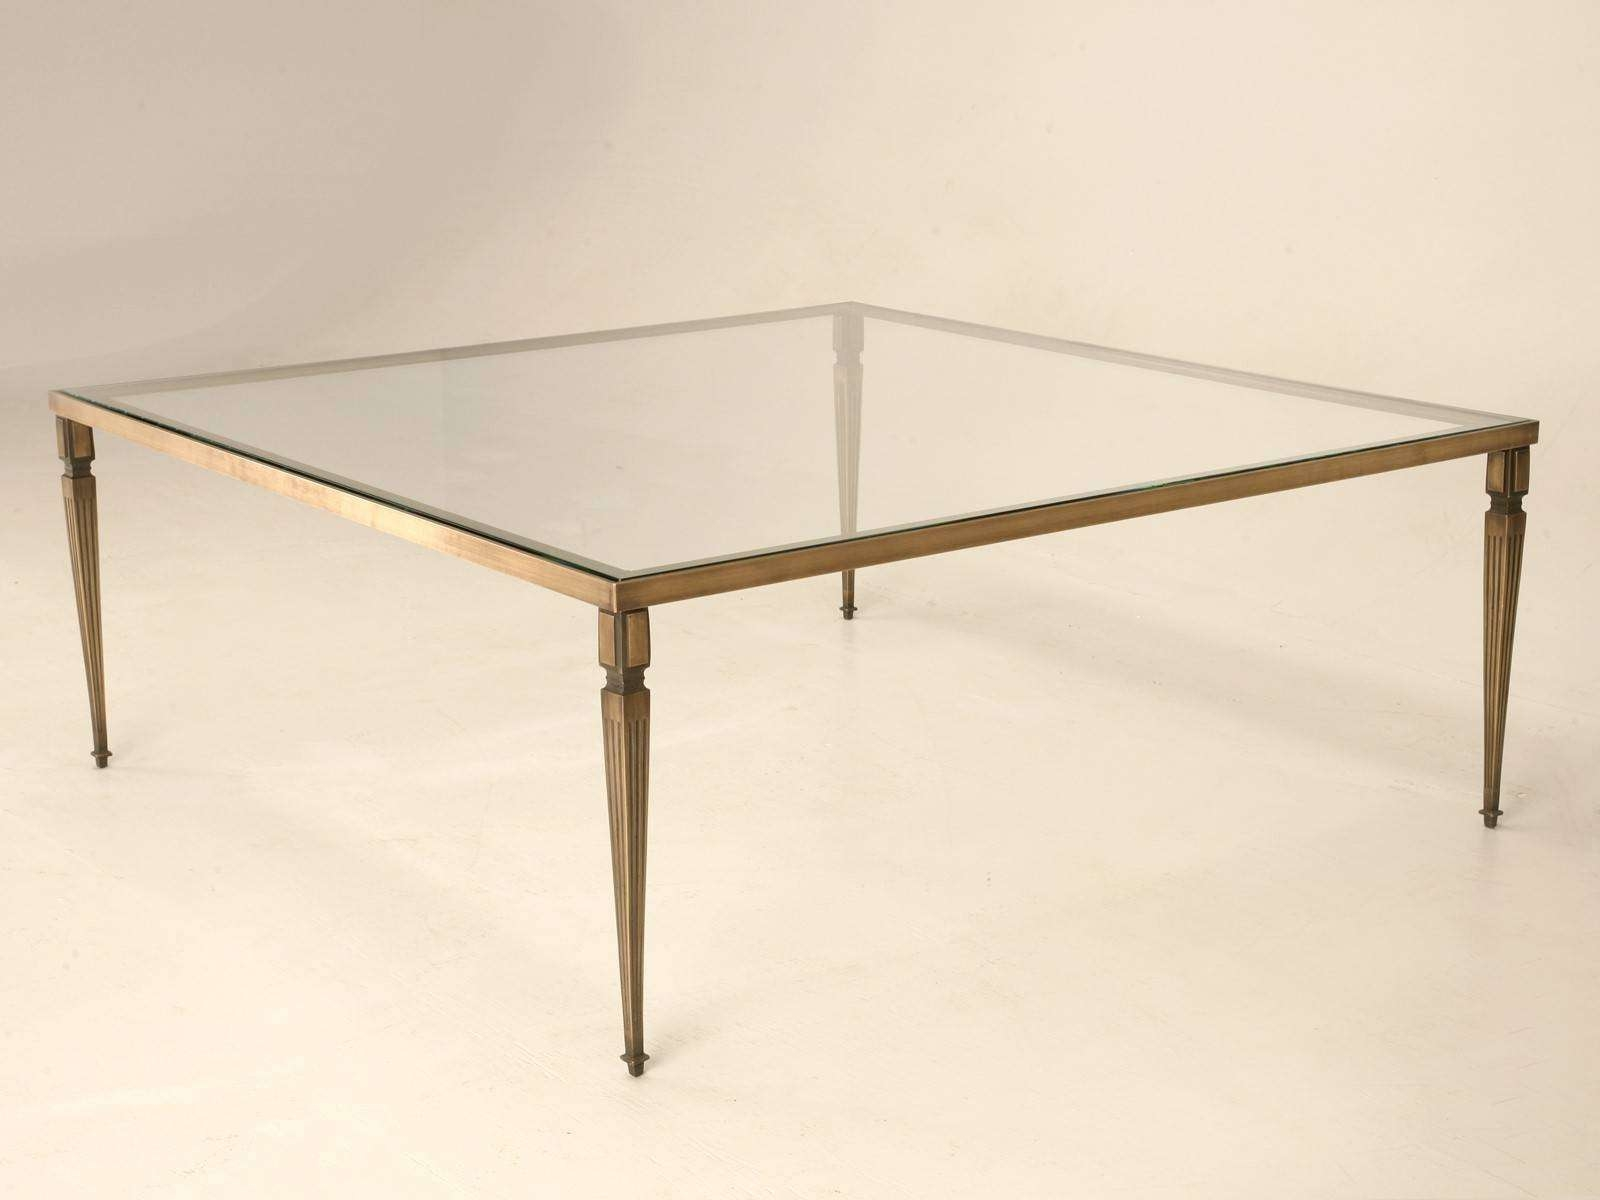 Glass Top Large Square Glass And Metal Coffee Tables Glass Box With Most Current Large Square Glass Coffee Tables (View 10 of 20)